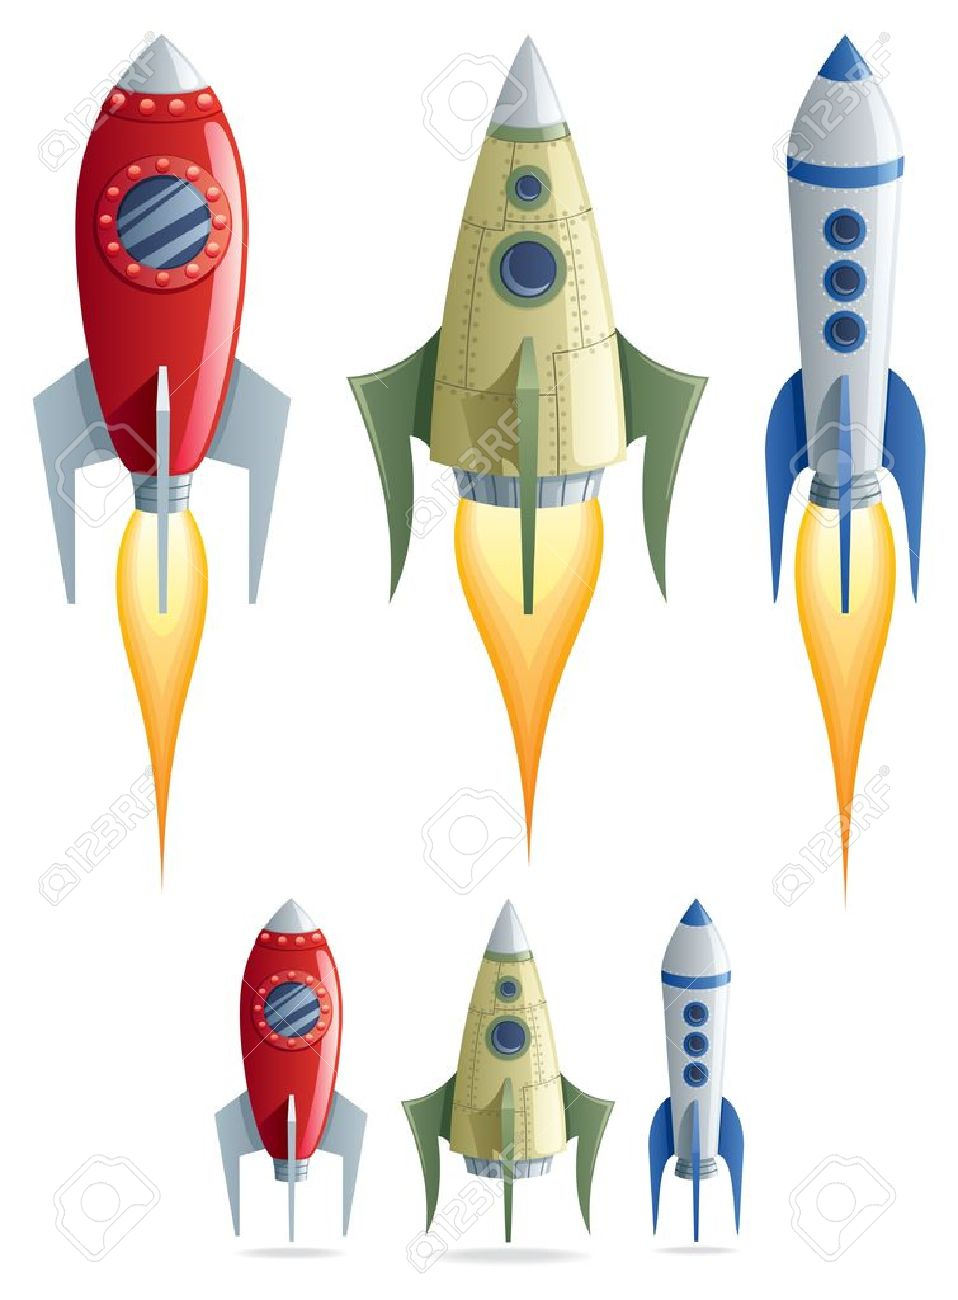 http://previews.123rf.com/images/malchev/malchev1110/malchev111000001/10826592-Set-of-3-cartoon-rockets-in-2-versions-No-transparency-used--Stock-Photo.jpg